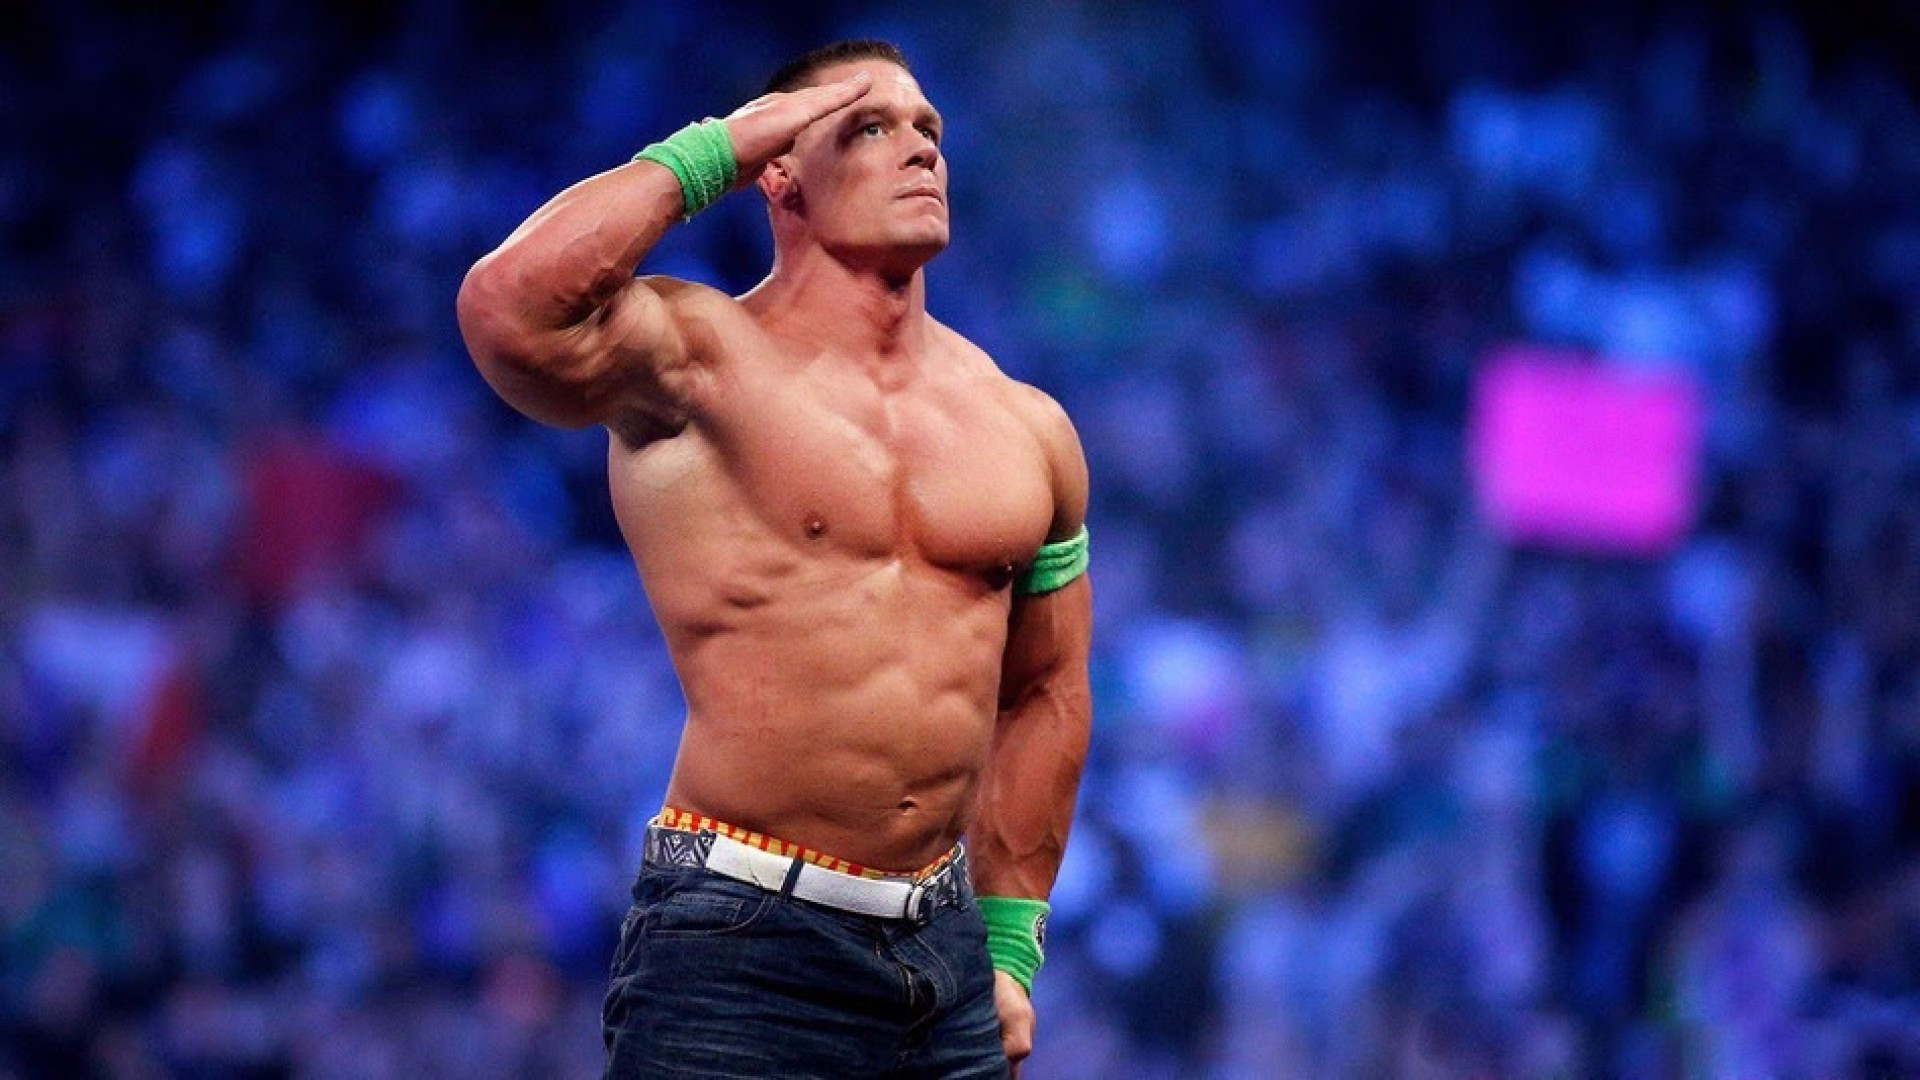 1920x1080 0 John Cena Wallpapers For Computer John Cena Wallpapers HD Pixels Talk